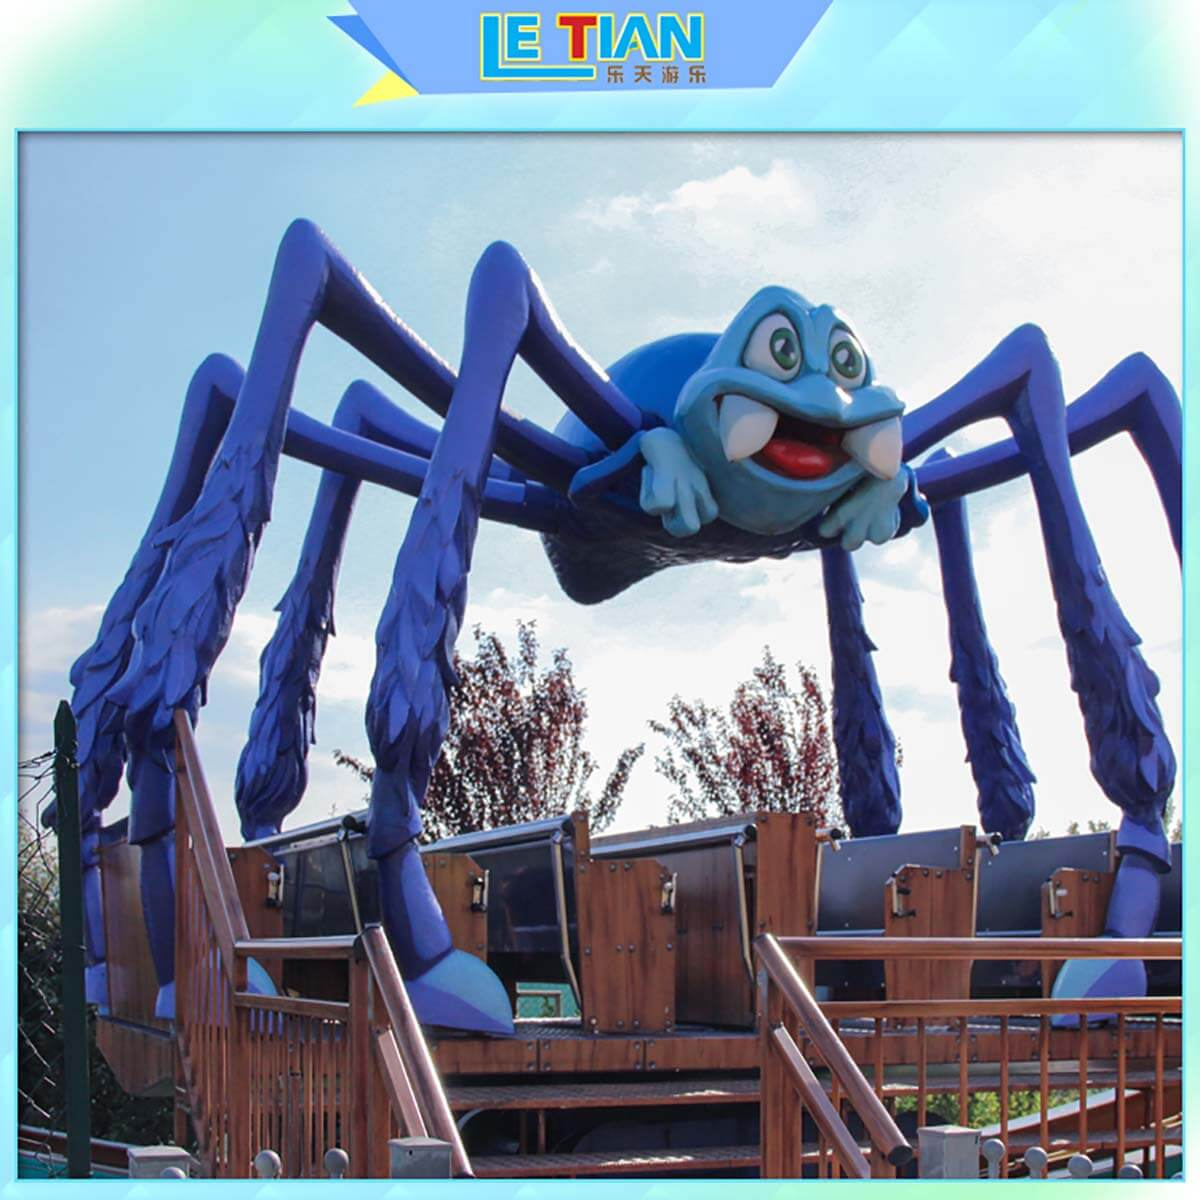 LETIAN amusing rides for kids mall-4